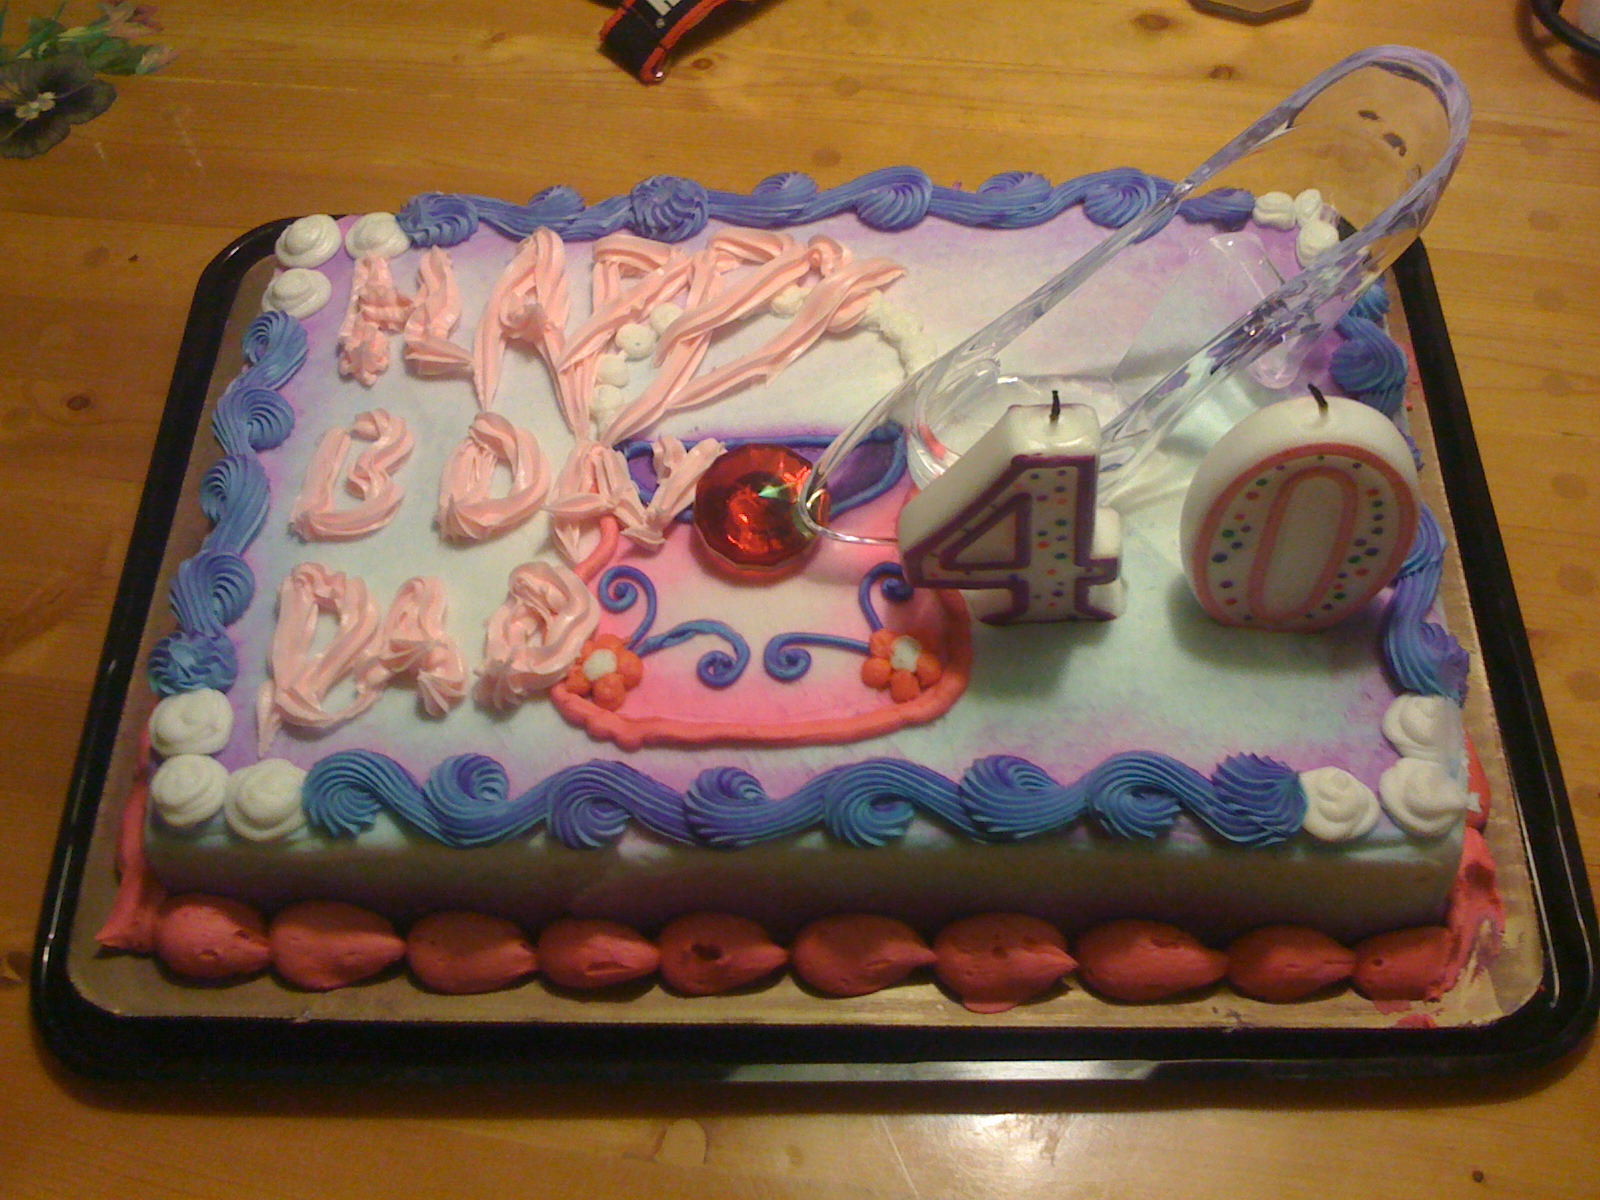 Cake Wrecks Home Whats That Supposed To Mean